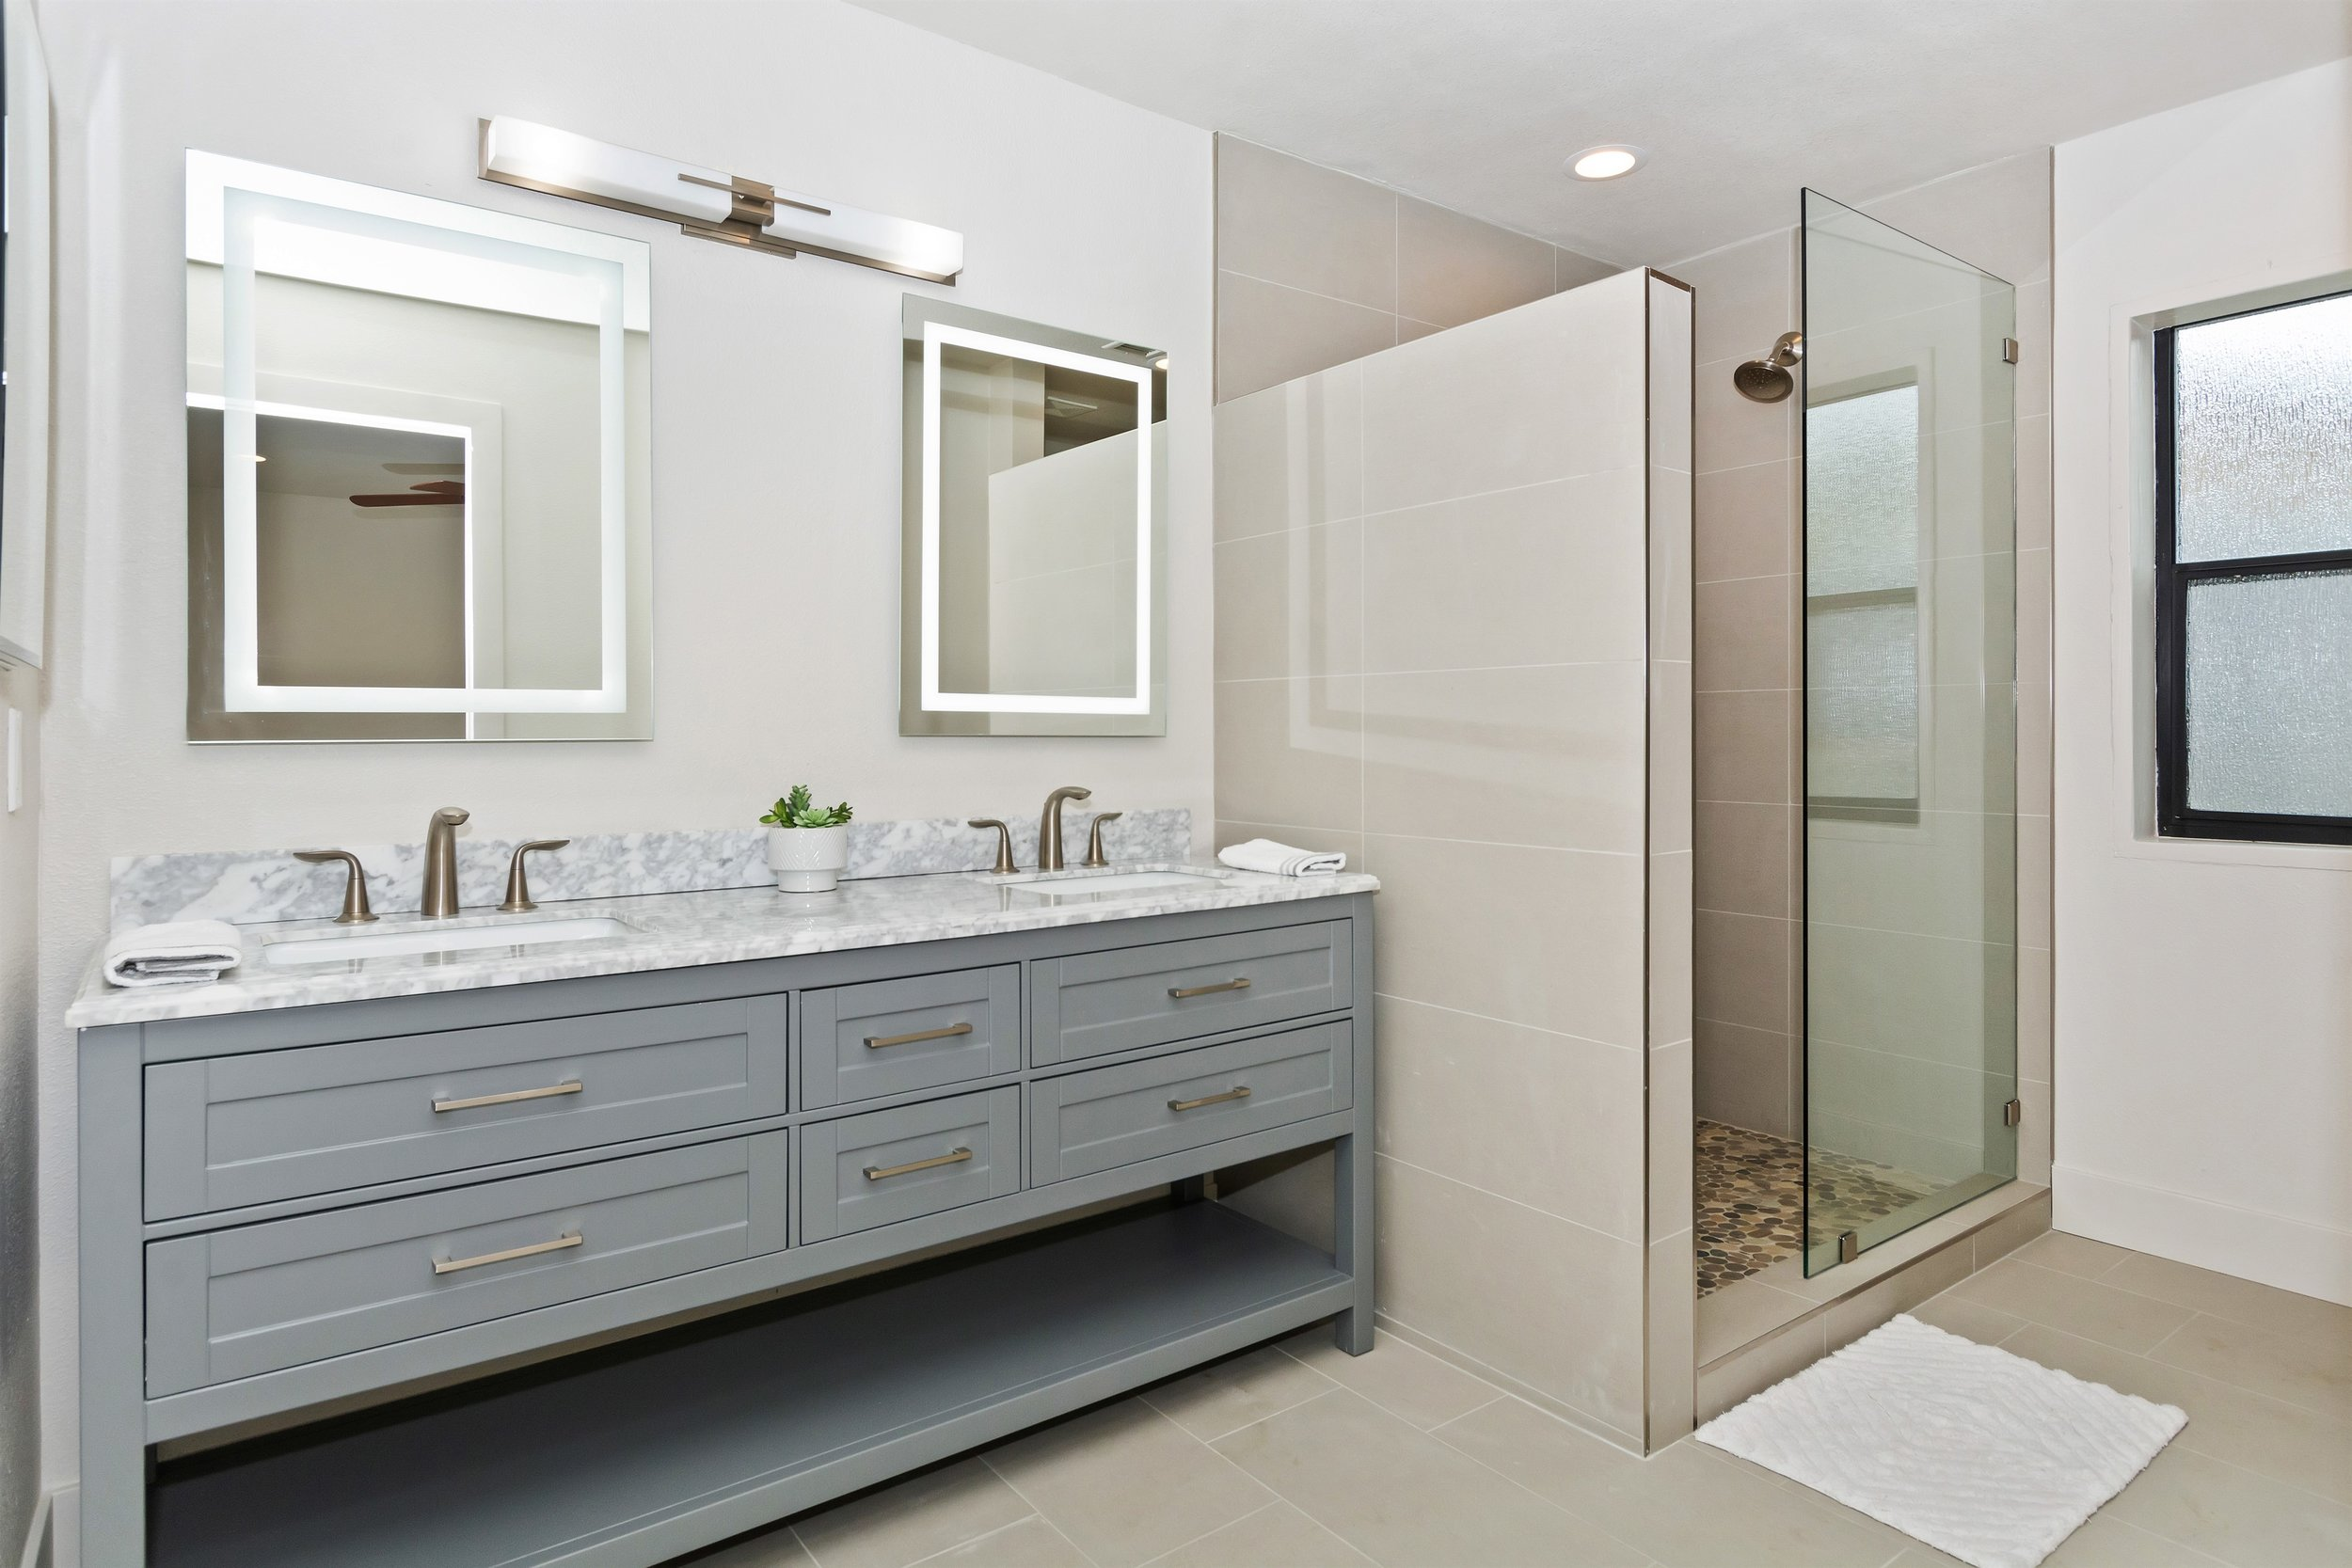 009_Master Bathroom.jpg